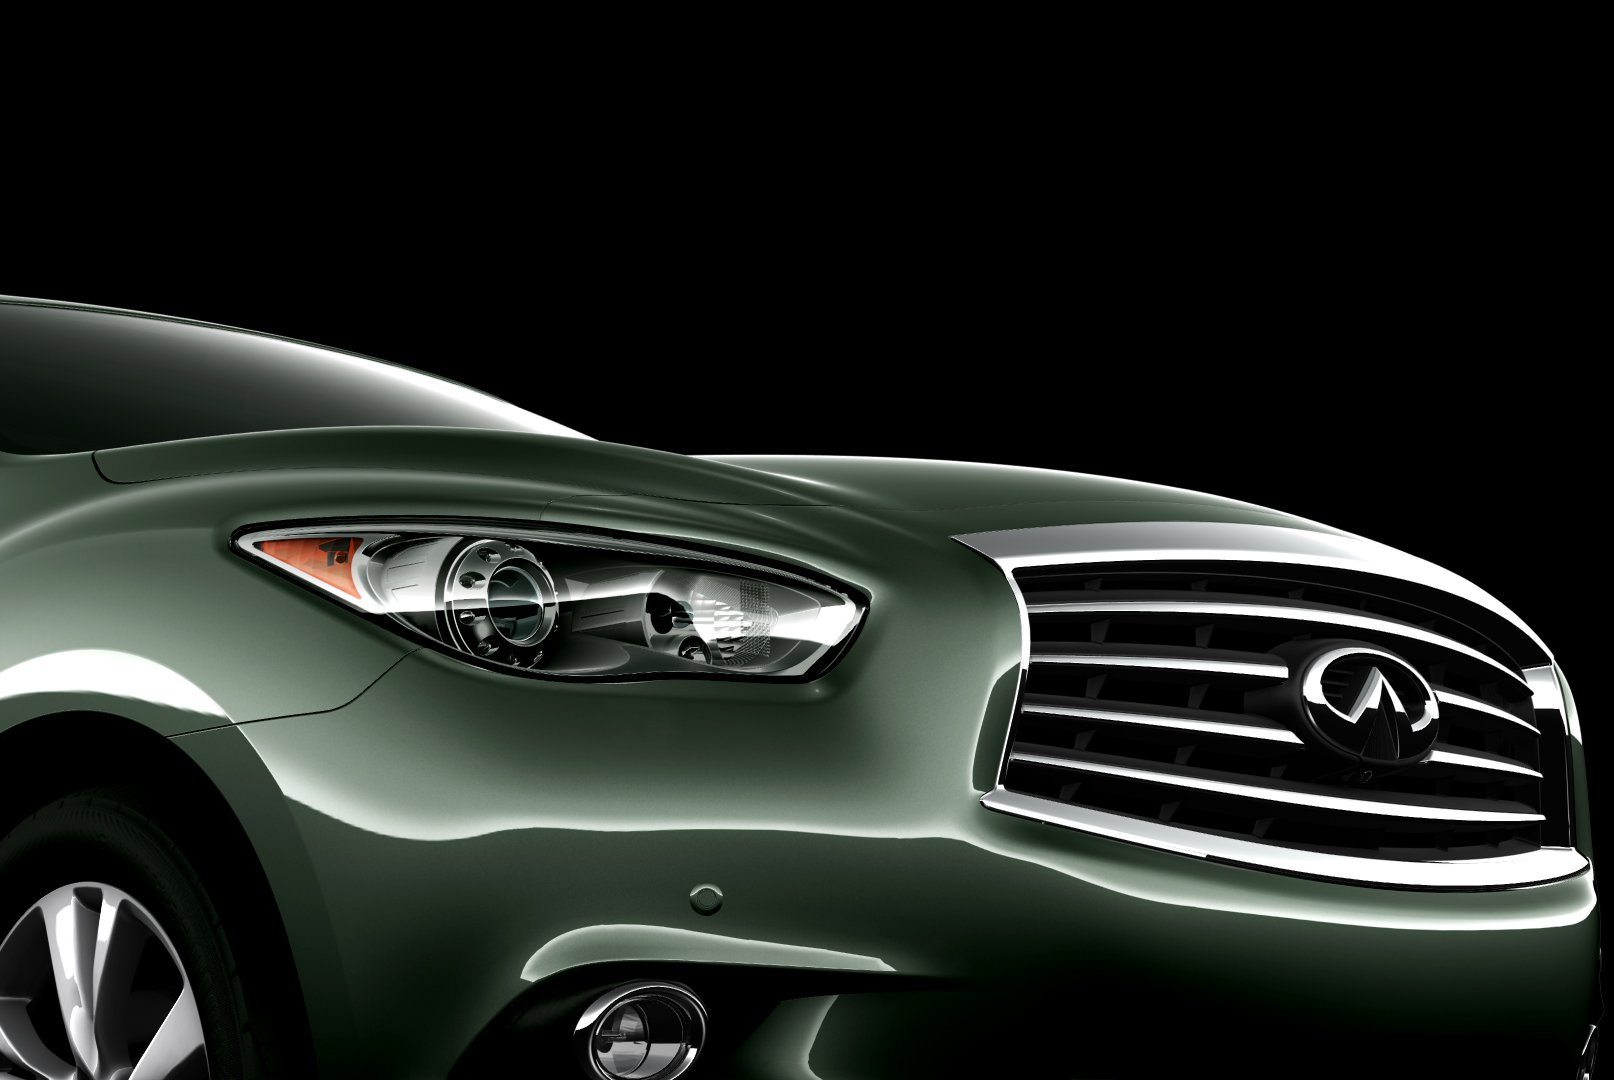 6th Infiniti JX Concept Teaser Image Reveals Grill Action